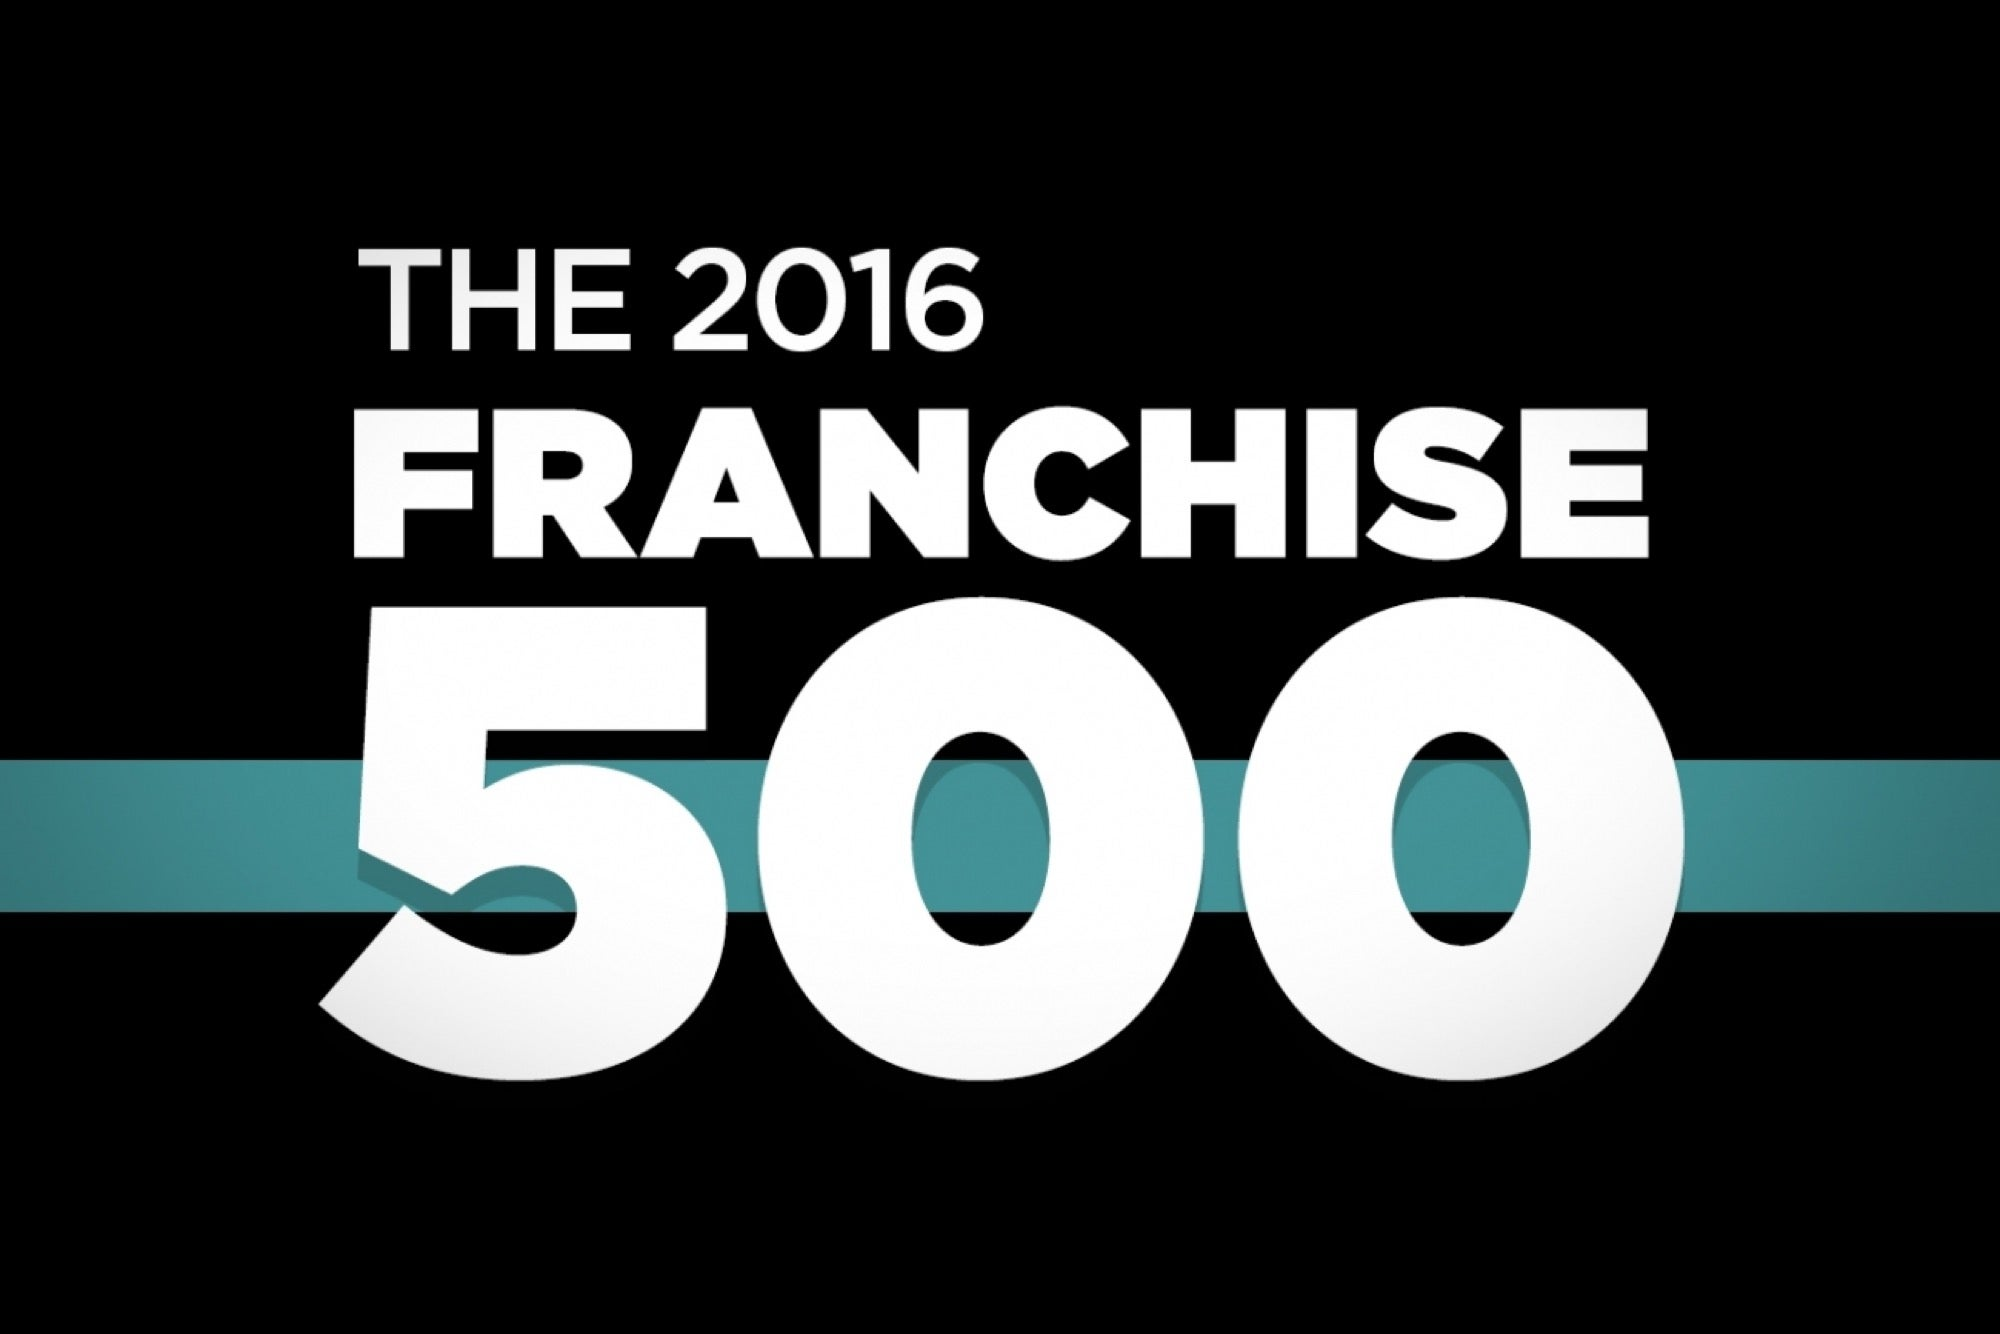 What's Hot in Franchising? The Big Takeaways From Our Franchise 500 Ranking. #Franchise500